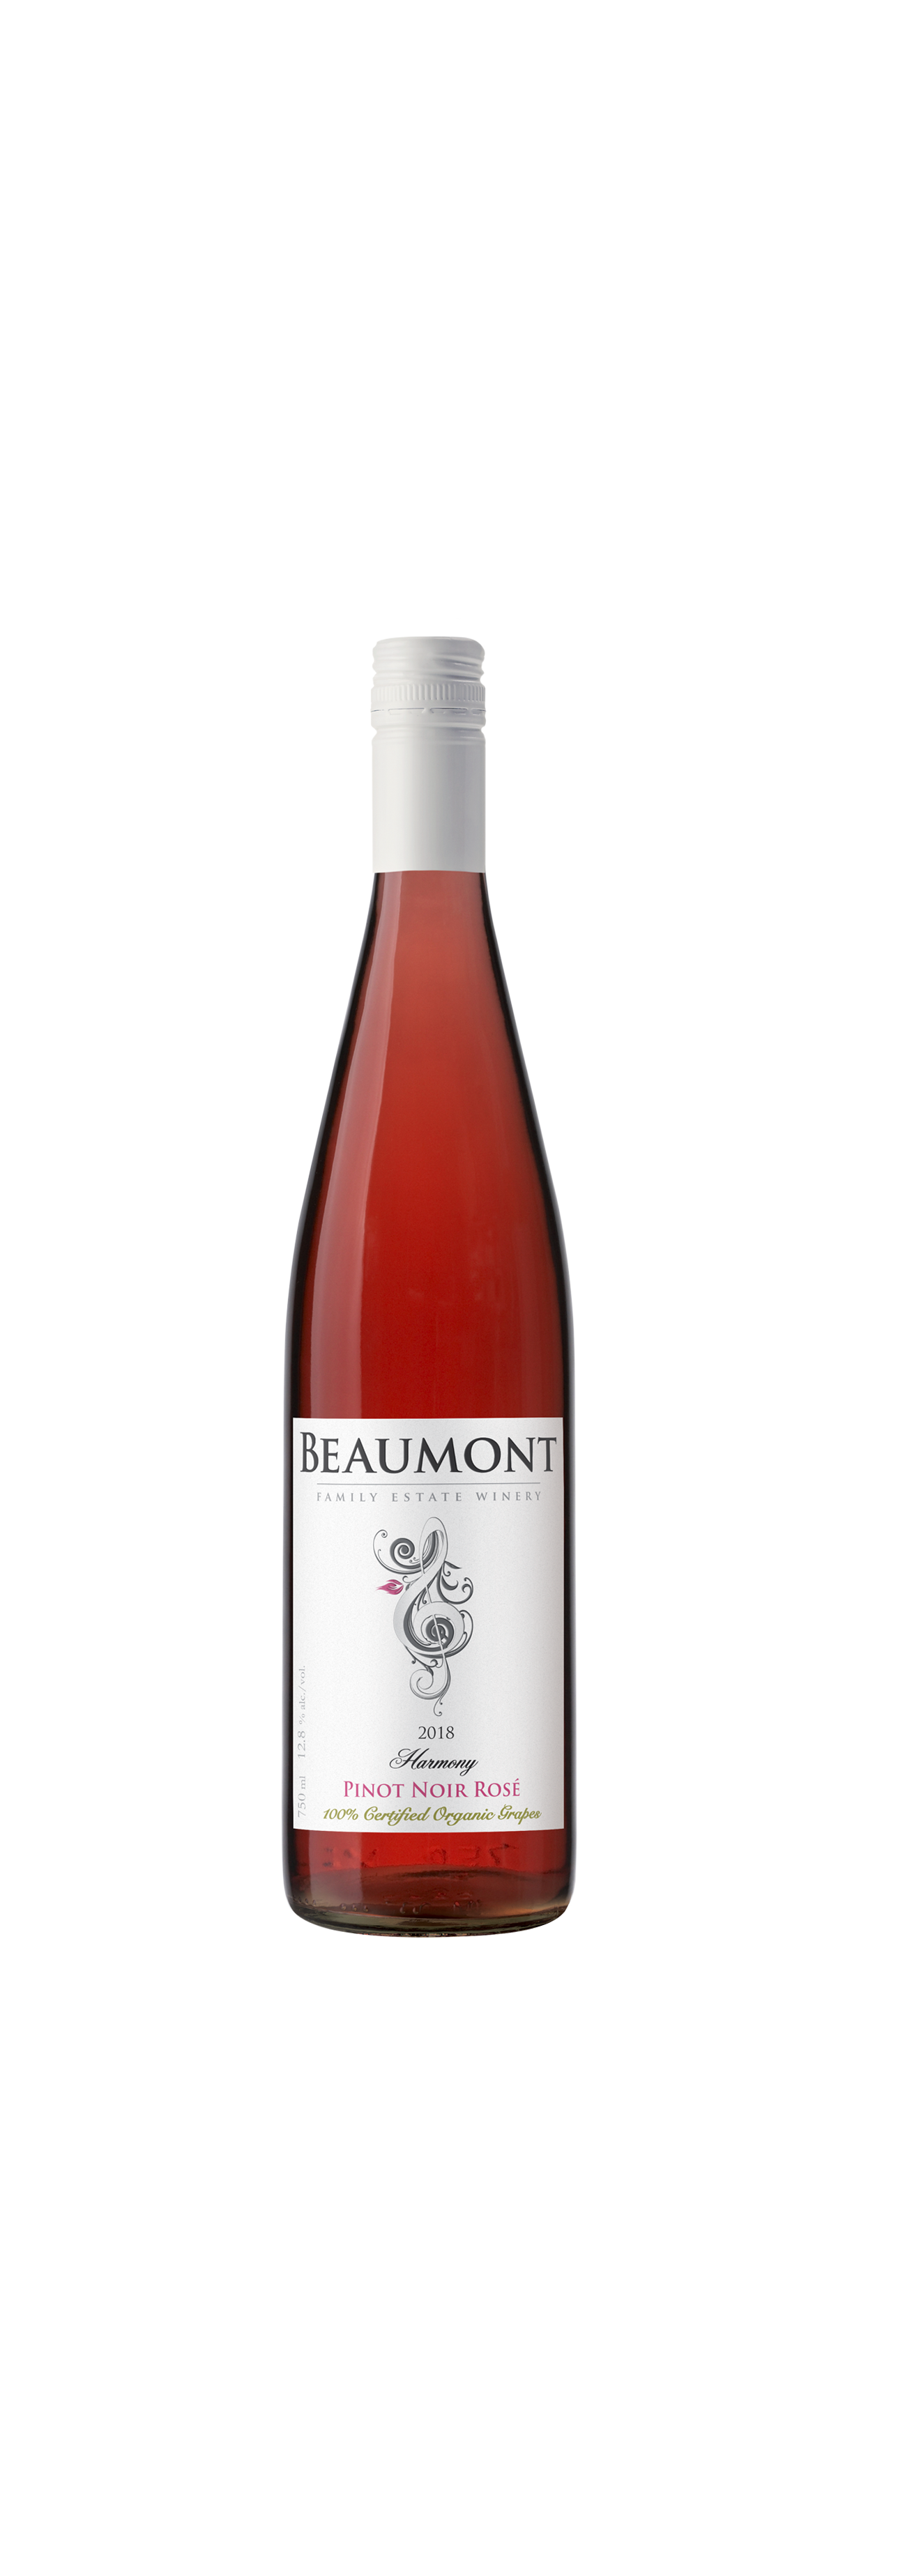 'Harmony' Pinot Noir Rose 2018  Beaumont Family Estate Winery